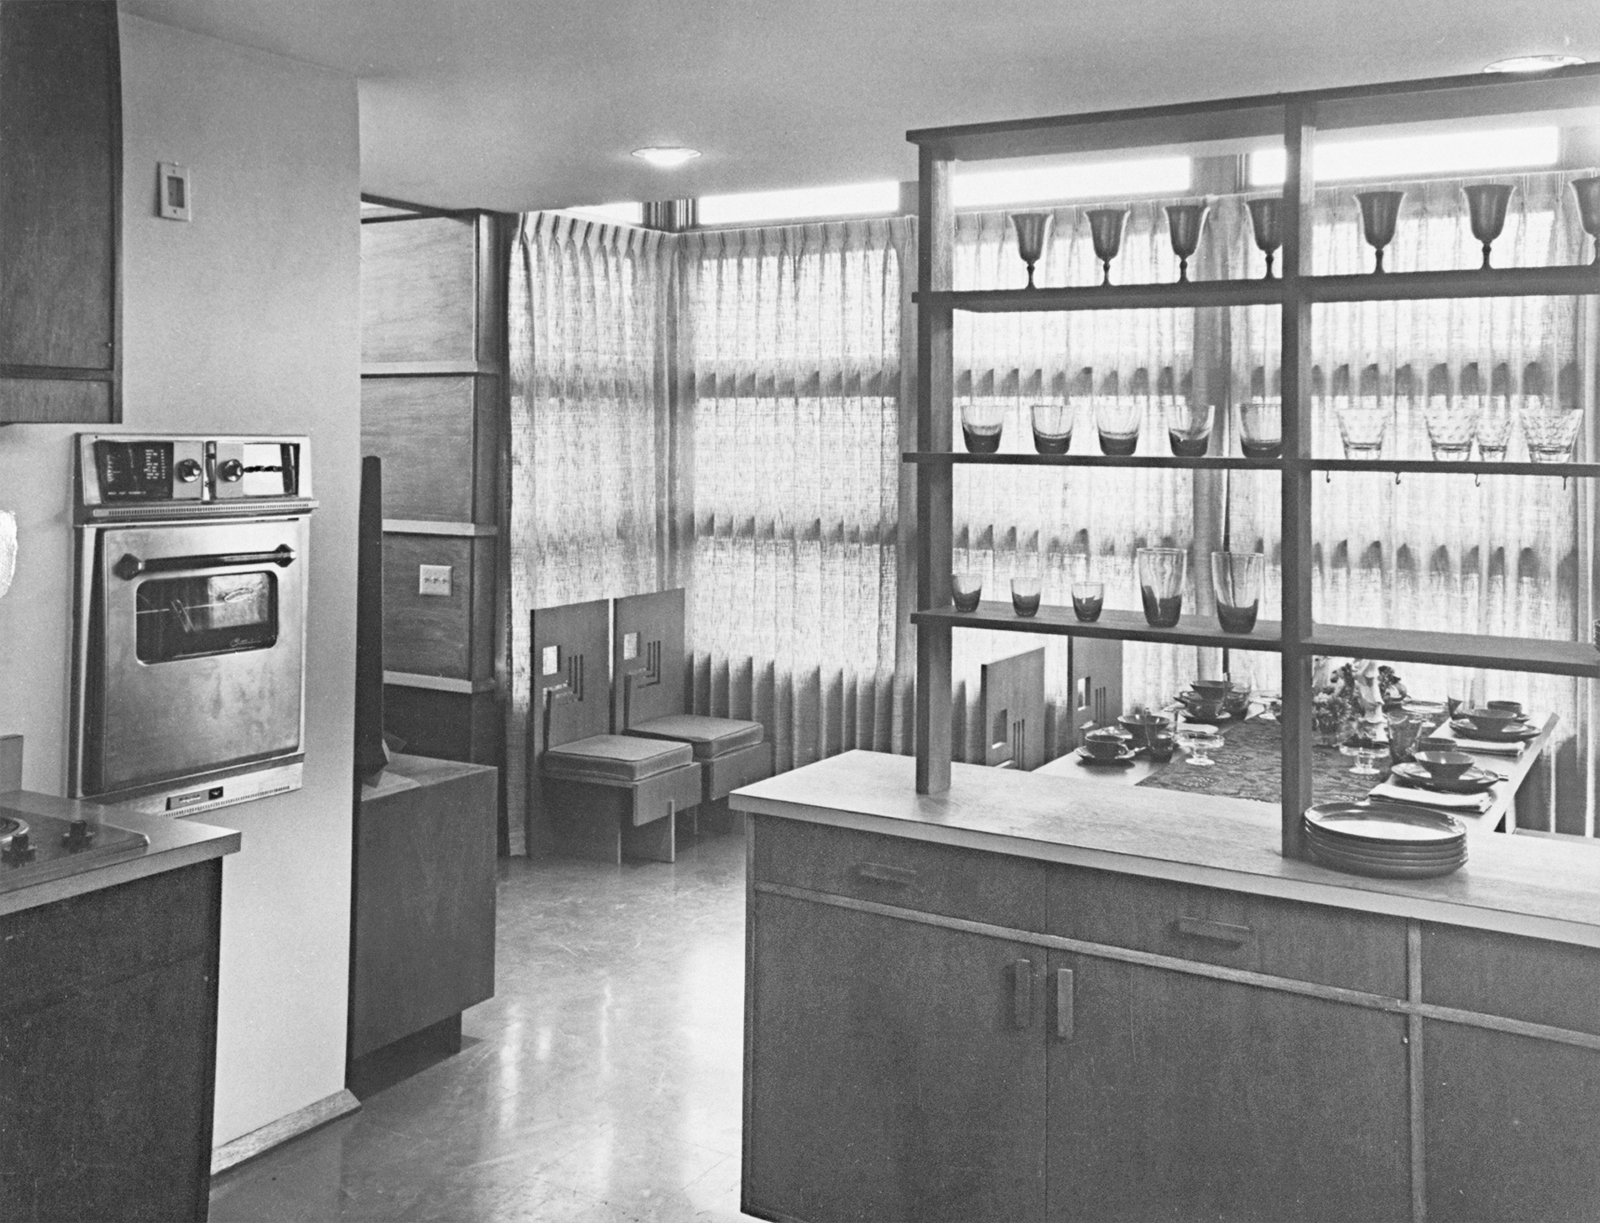 Interior of a prefab house showing kitchen looking out into dining room, designed by Frank Lloyd Wright.